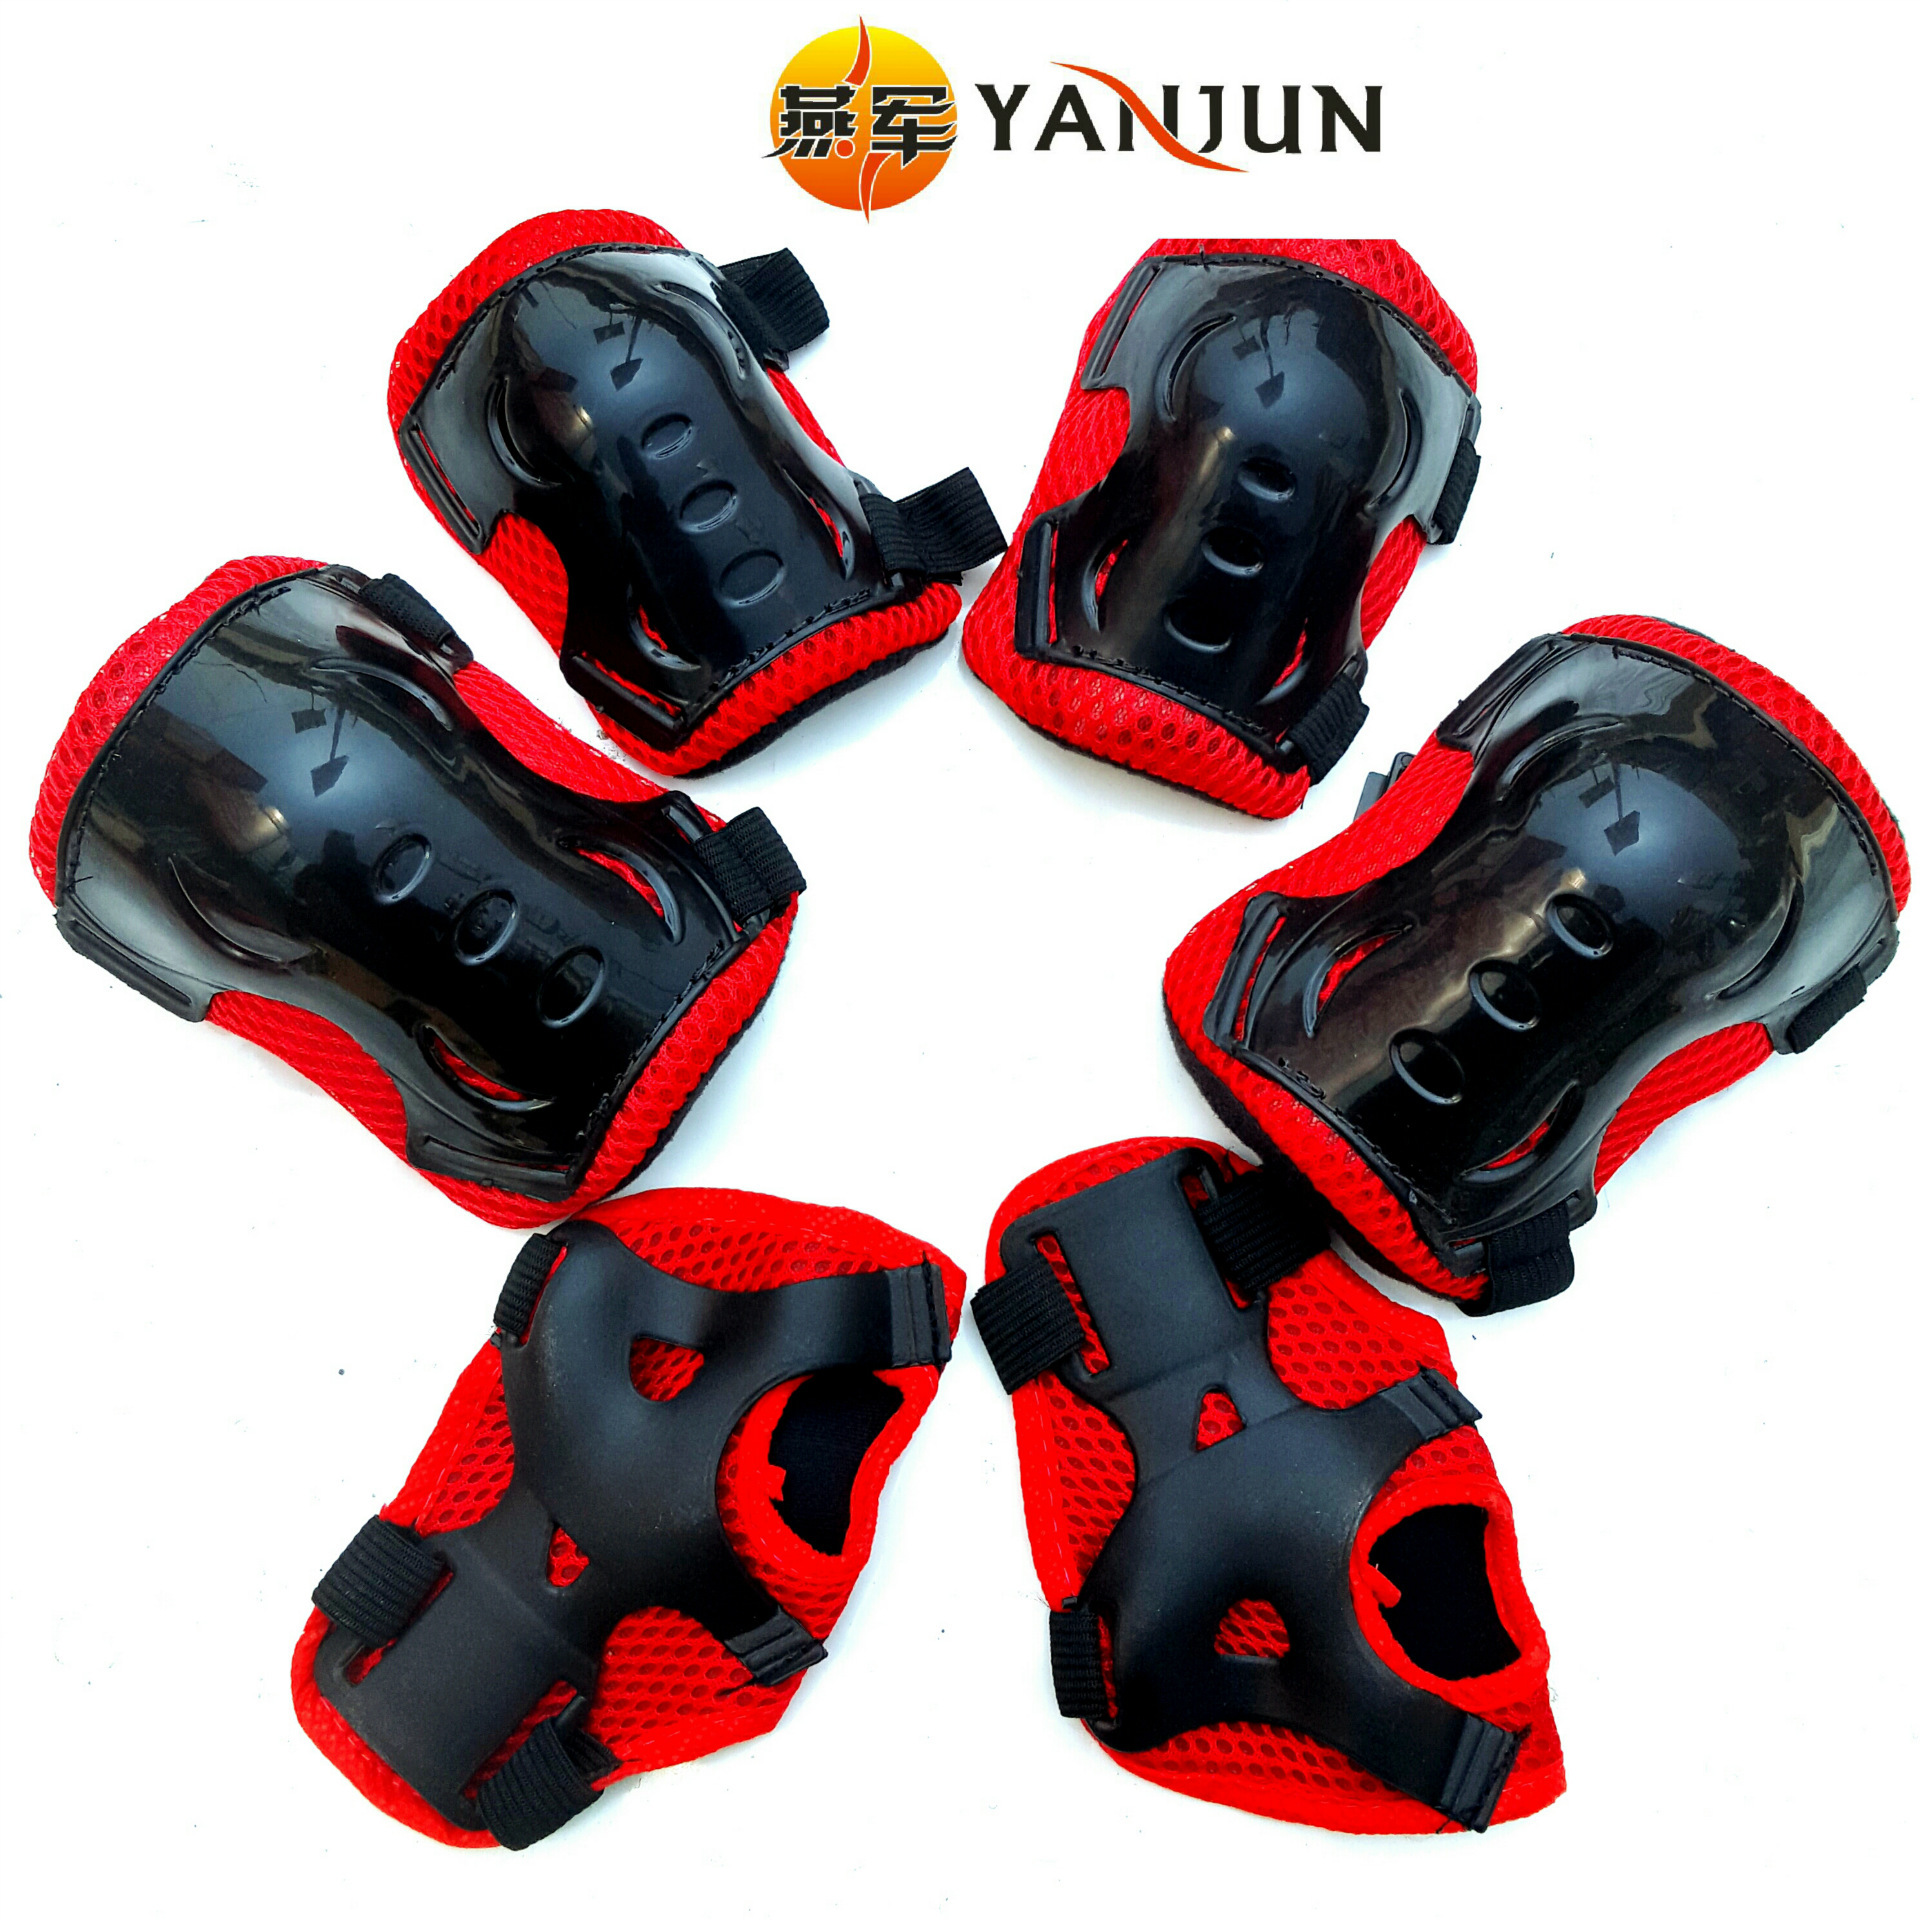 Children Roller Skating Thick Protective Clothing Skates Roller Skates Butterfly Protective Clothing Six Pieces Set Wholesale Go